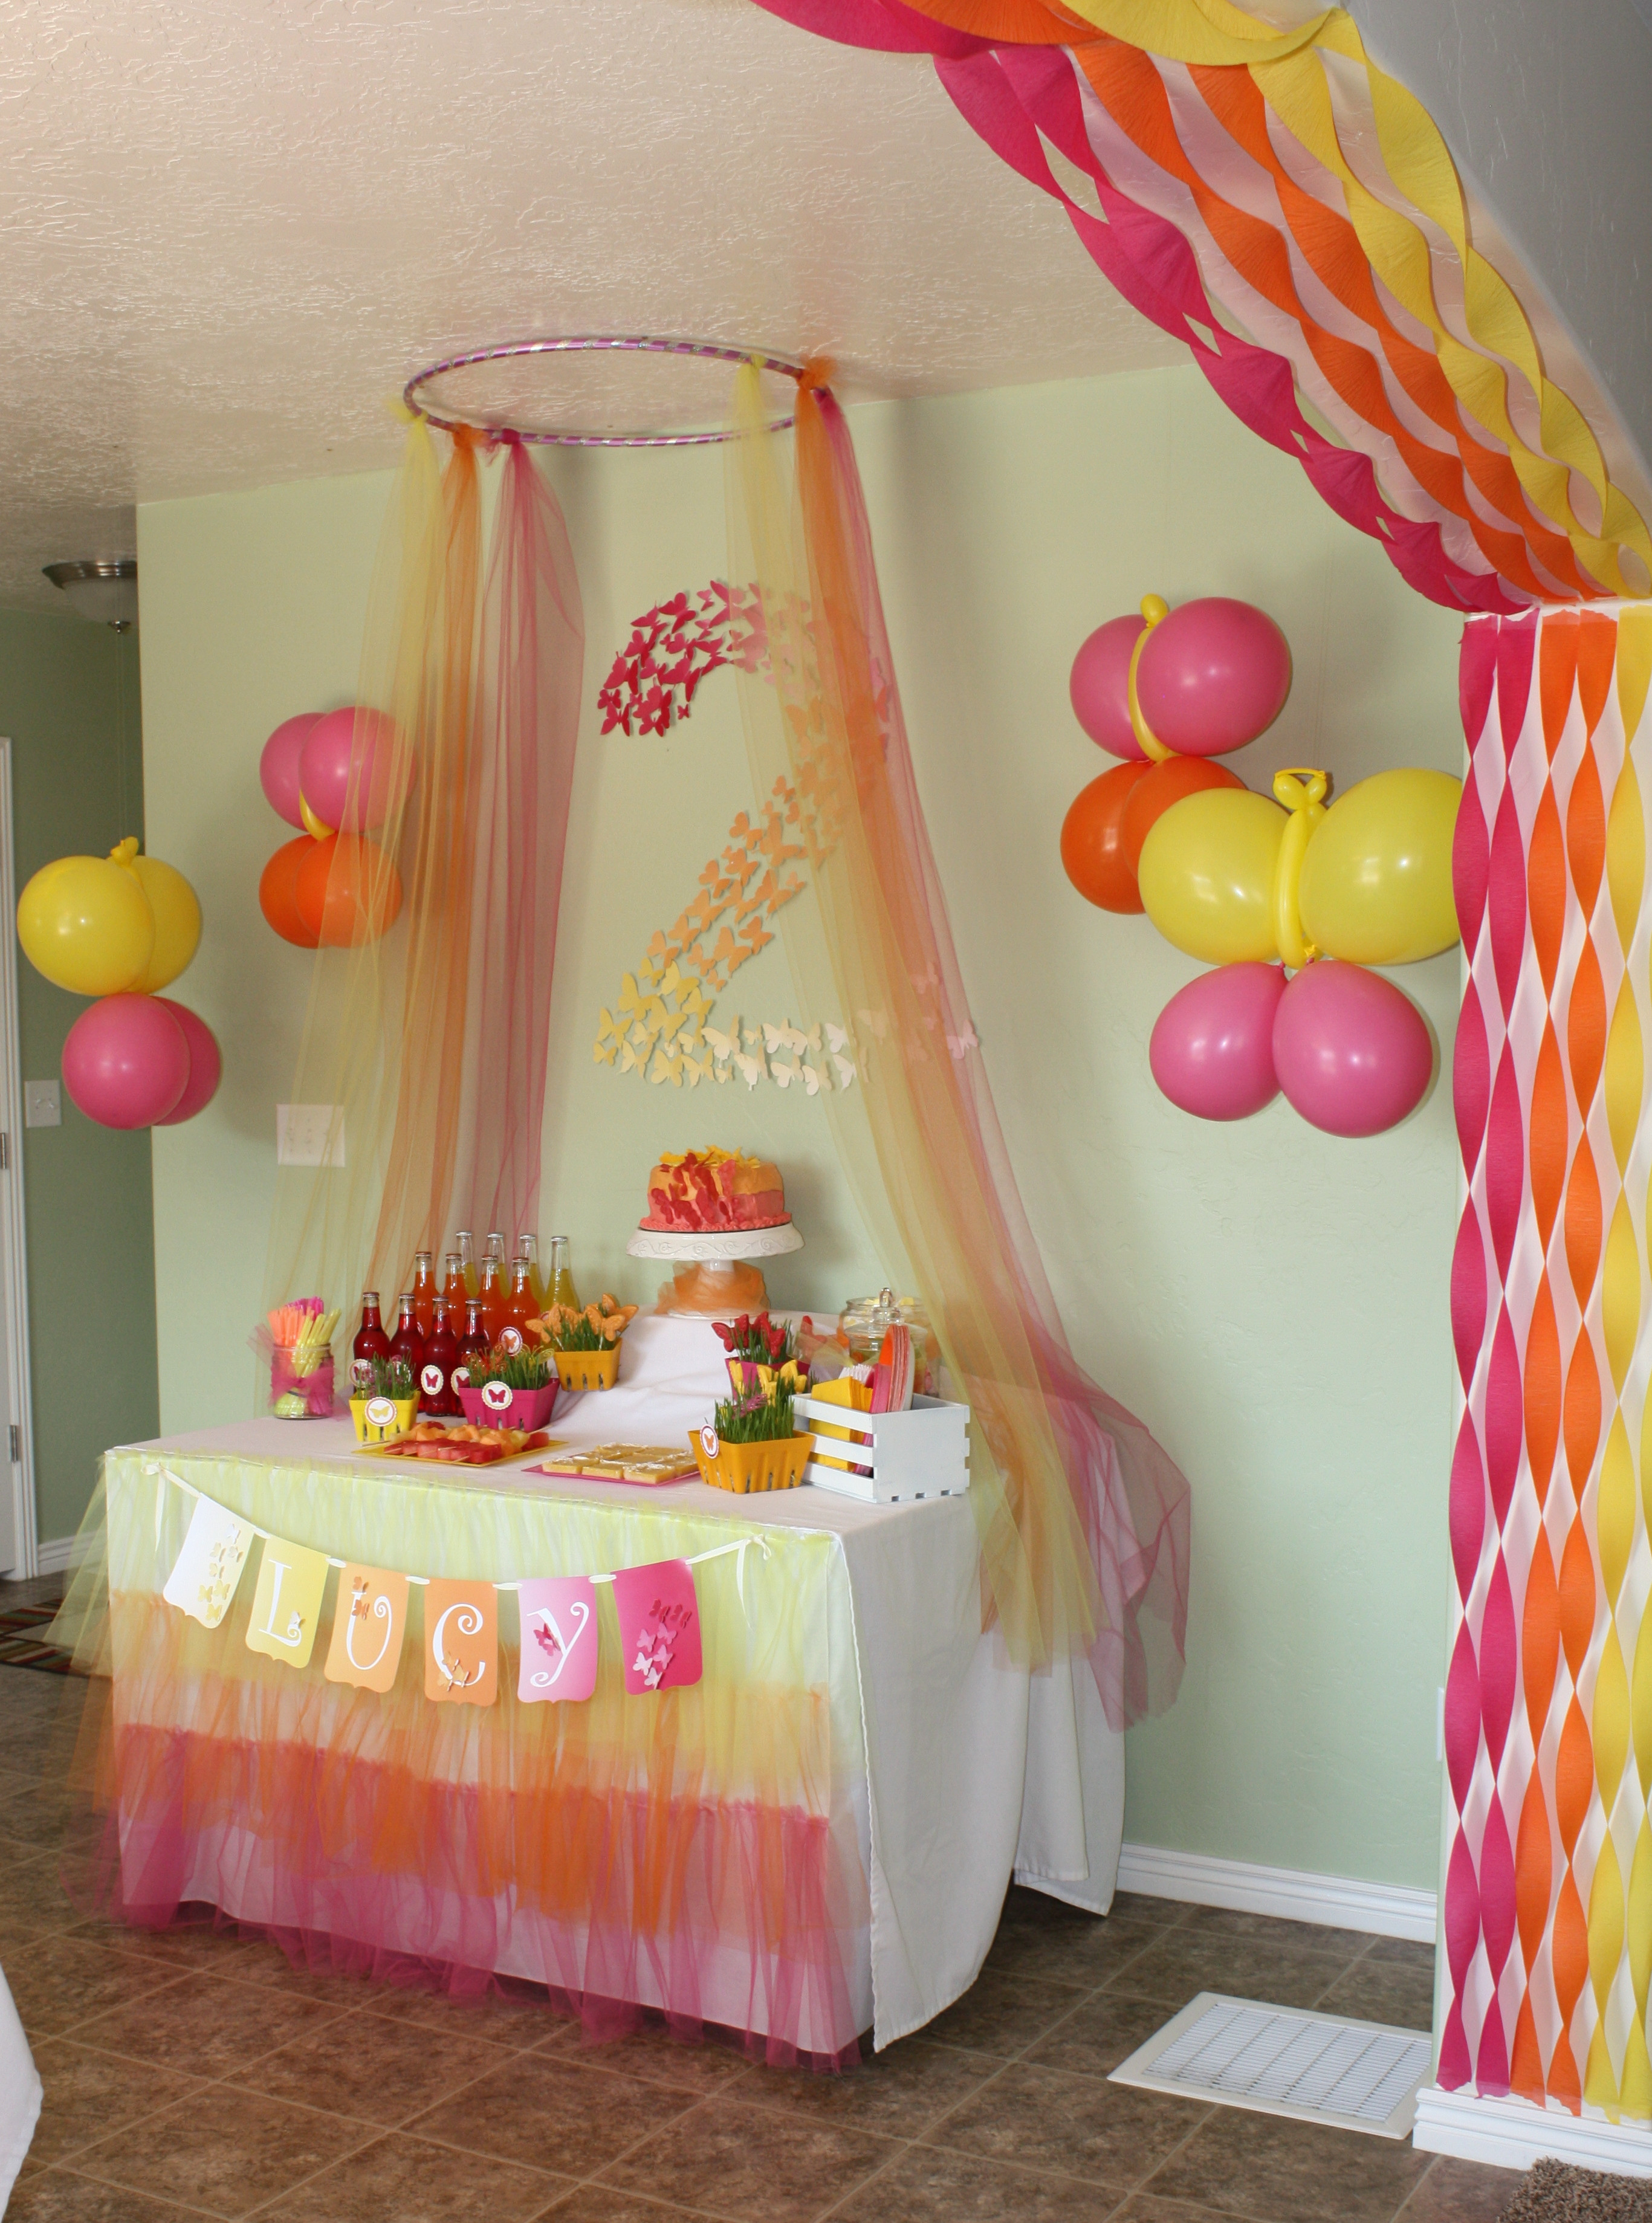 Best ideas about Birthday Decorating Ideas . Save or Pin Birthday Party Decoration Now.